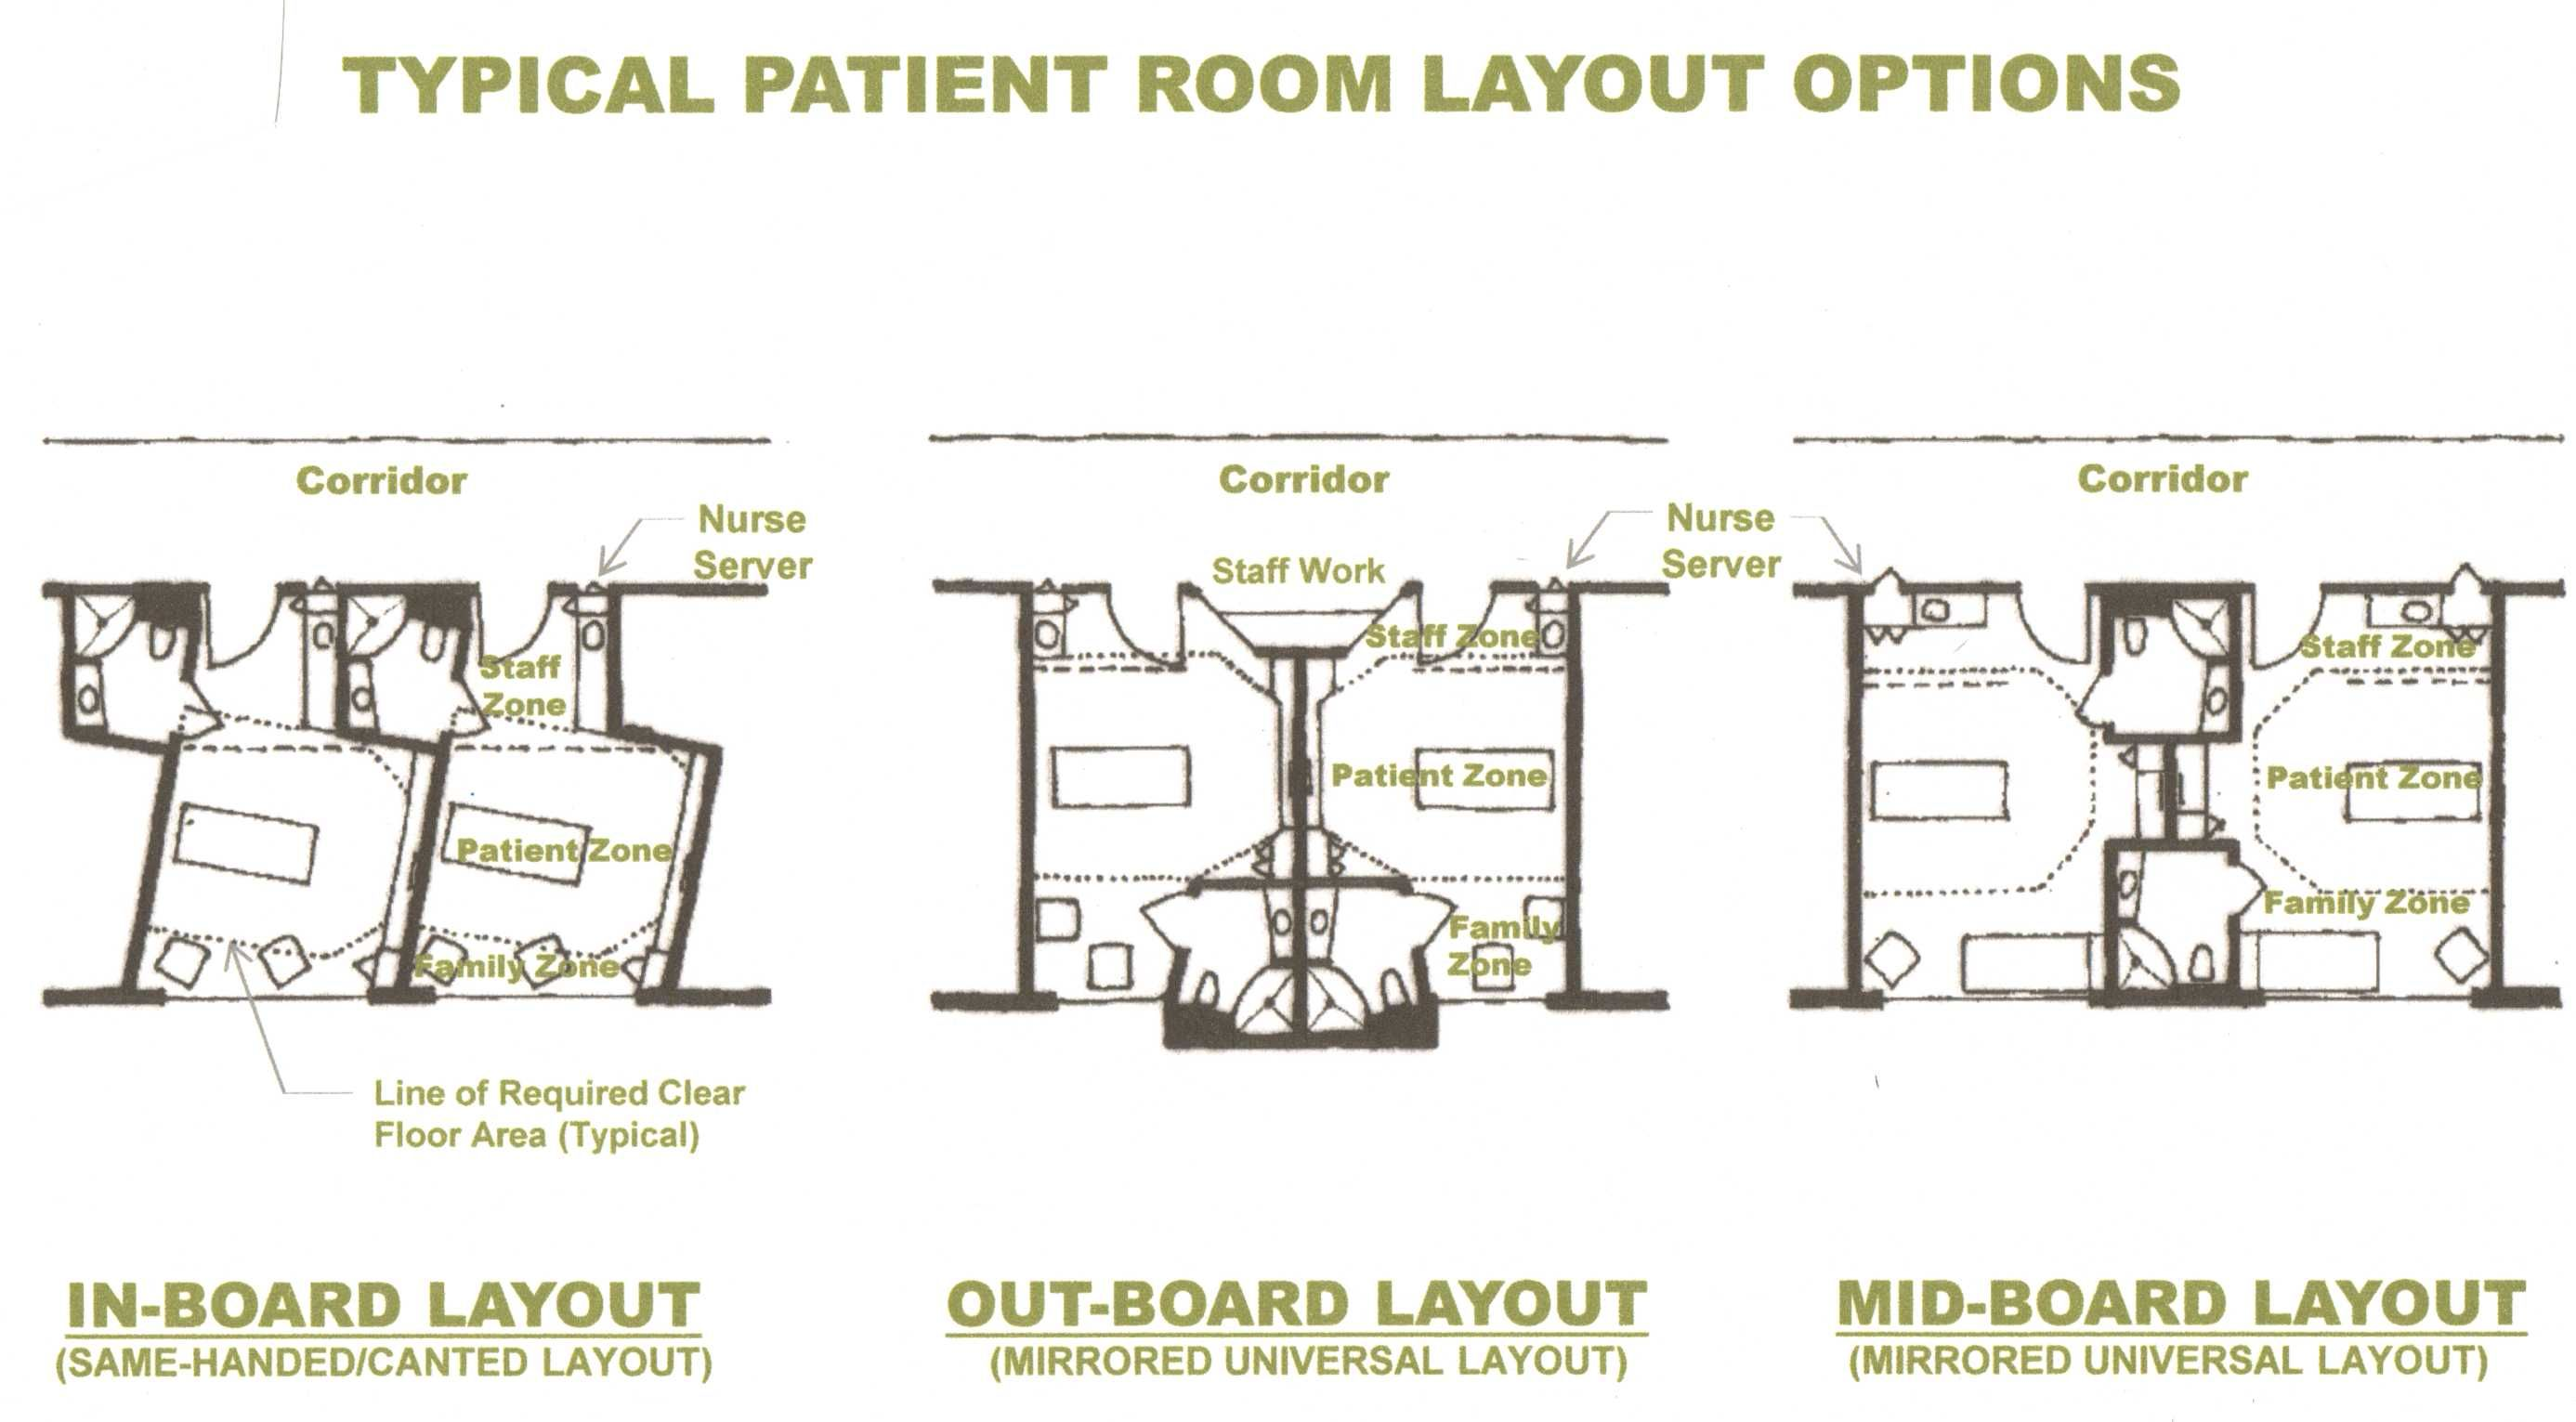 Typical Patient Room Layouts